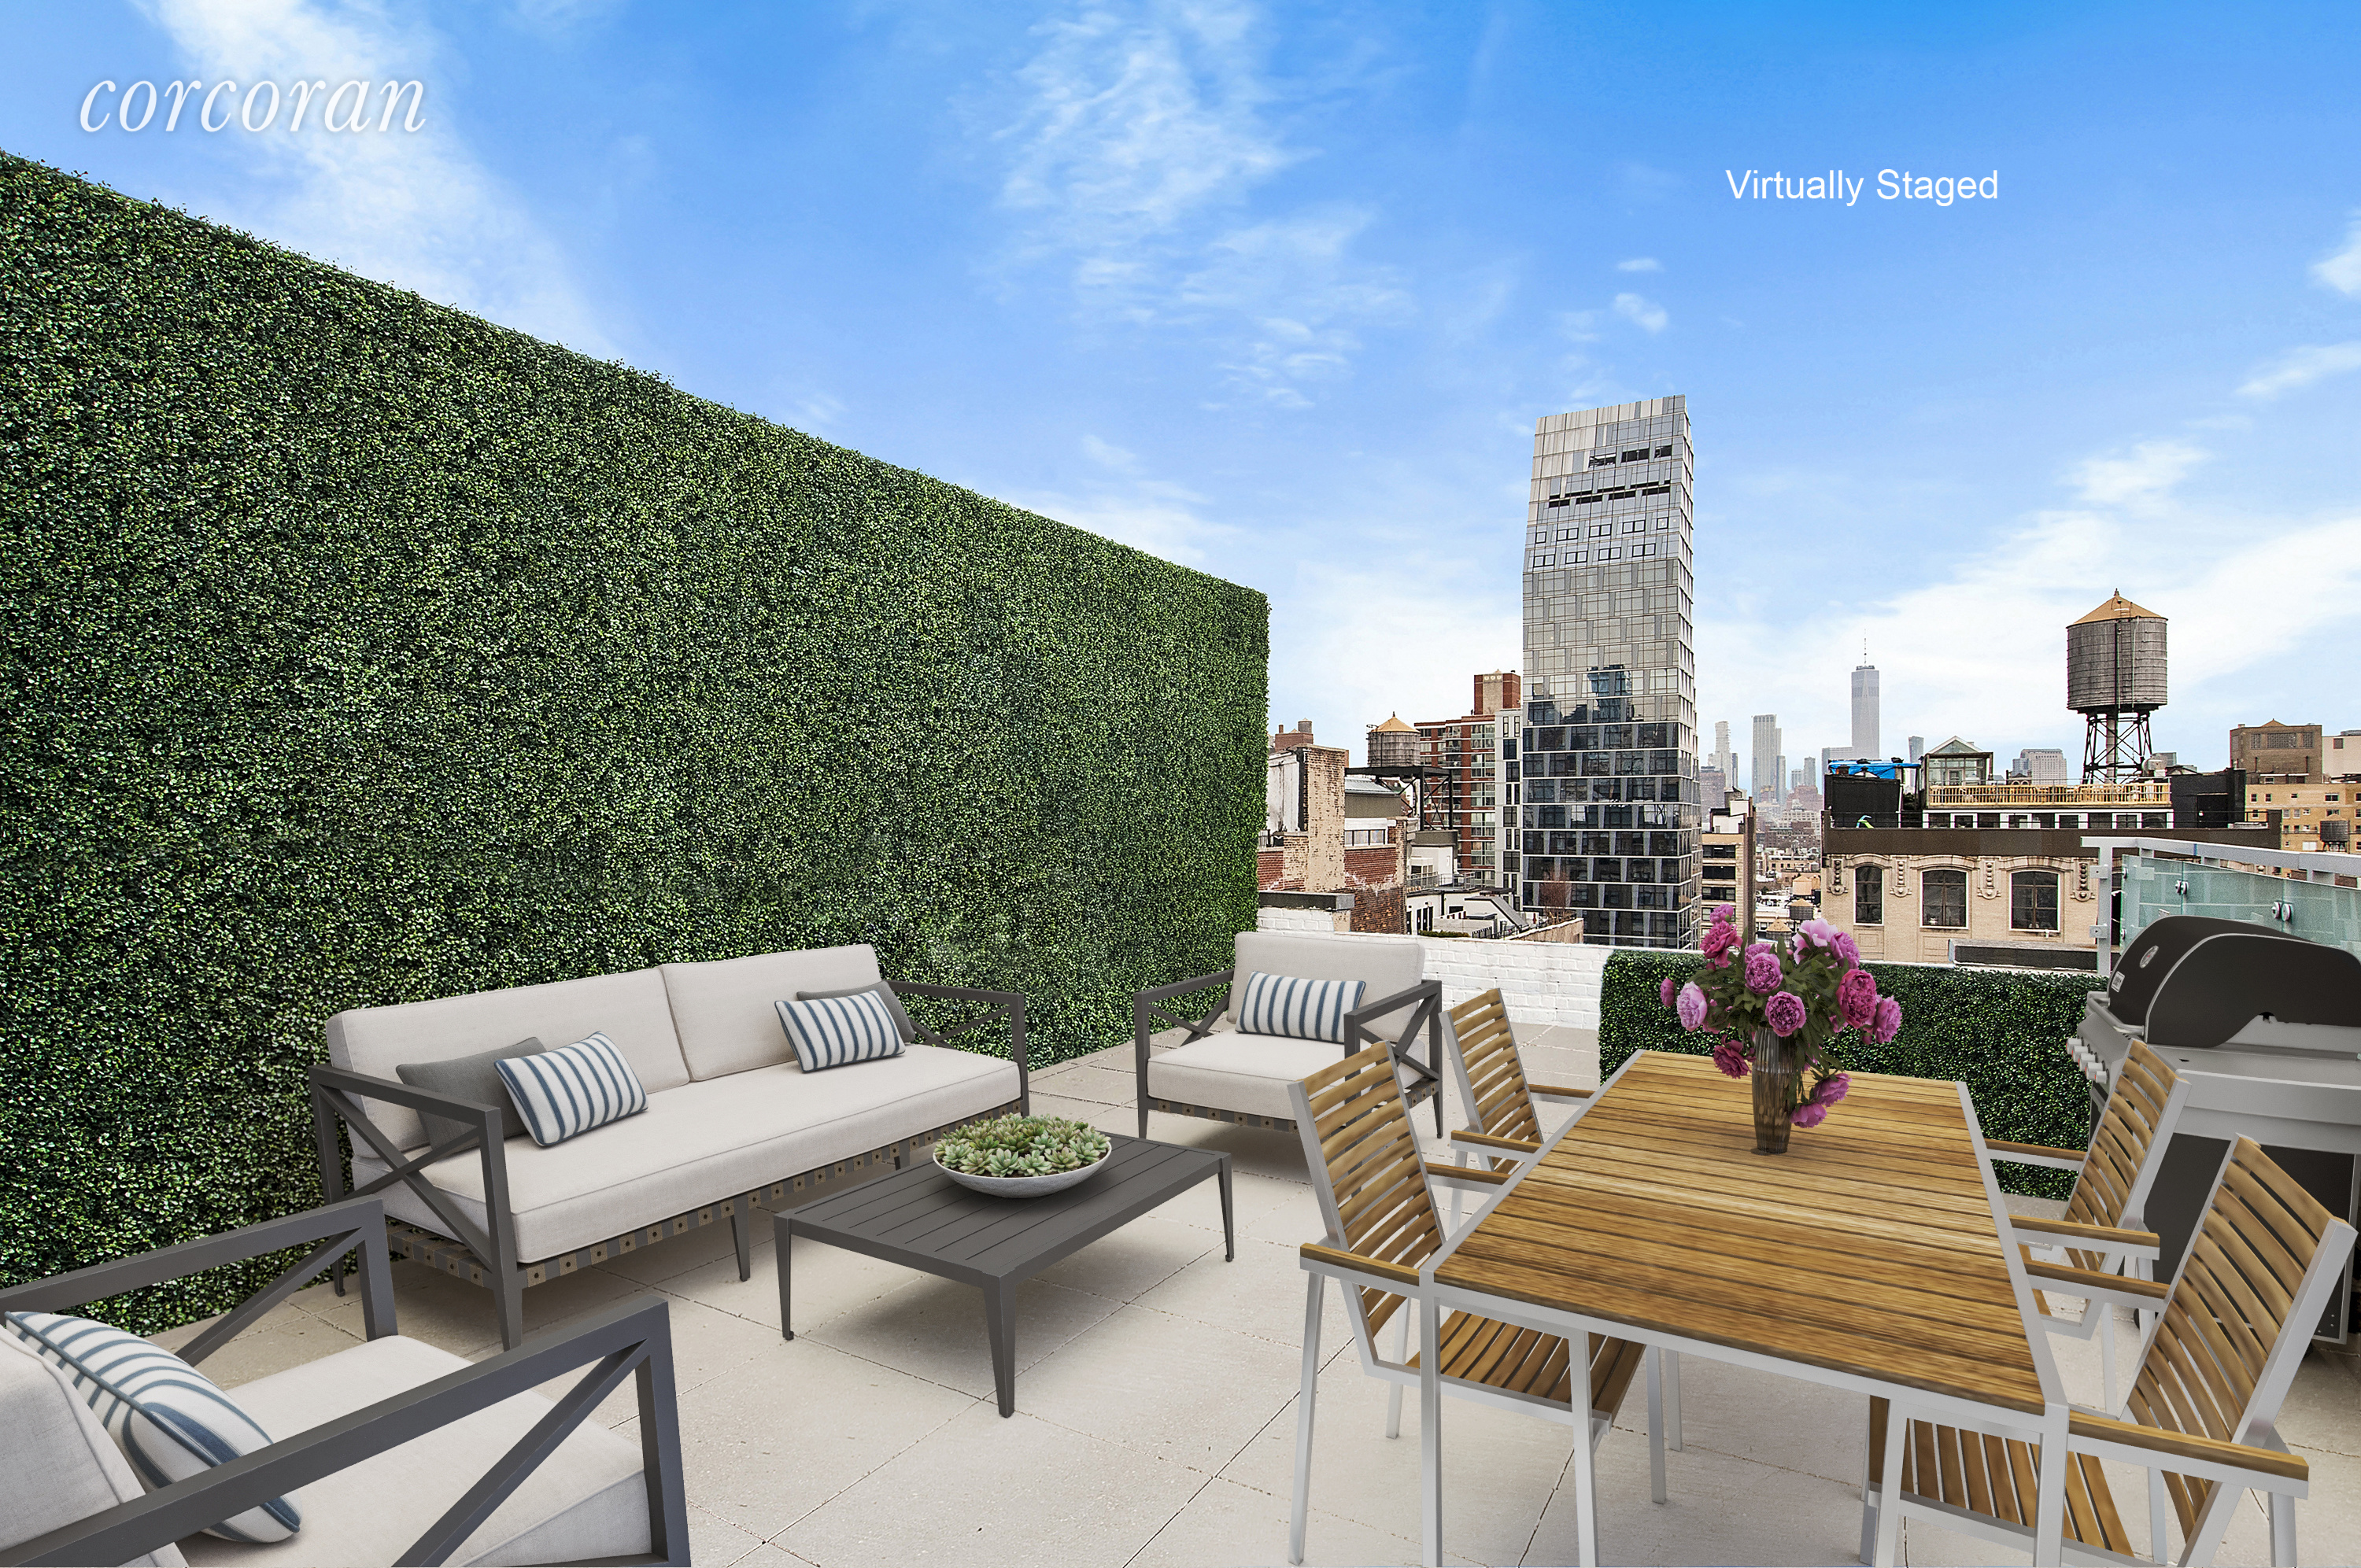 TWO perfect and exclusive SOUTH FACING SUNLIT OUTDOOR PENTHOUSE TERRACES with open skies above.  Step out, mask free into the skies above Flatiron with endless views across the city.  Immense, full floor loft that feels like an intimate townhouse.  Perched as a penthouse upon an intimate condominium at the nexus of Chelsea/Flatiron and Union Square.  Customize the 6,733 square feet to perfectly suit your needs.  Currently configured as a five bedroom, five and a half bathroom home, this space is waiting for your customization.  Enjoy the luxuries of a full service boutique building with key locked elevator which enters directly into the space and realize your entertaining dreams.  Light, views, air and possibilities abound.  Contact us today for a tour of your future home.   allow freedom in NYC.Two times the fun and two times the sun, all at the amazing, unheard of price per square foot of $1,559 for a full service, boutique, condo, loft, penthouse with outdoor space! Who could ask for anything more?Laundry Room in Unit!2 Gas FireplacesRadiant Heating and Central Air ConditioningKey Locked Elevator Access and SO MUCH MORE!Also included are TWO double sized storage units in this FULL SERVICE DOORMAN BOUTIQUE CONDOMINIUMBuilding GYMLandscaped building roof deck accessible by elevator!